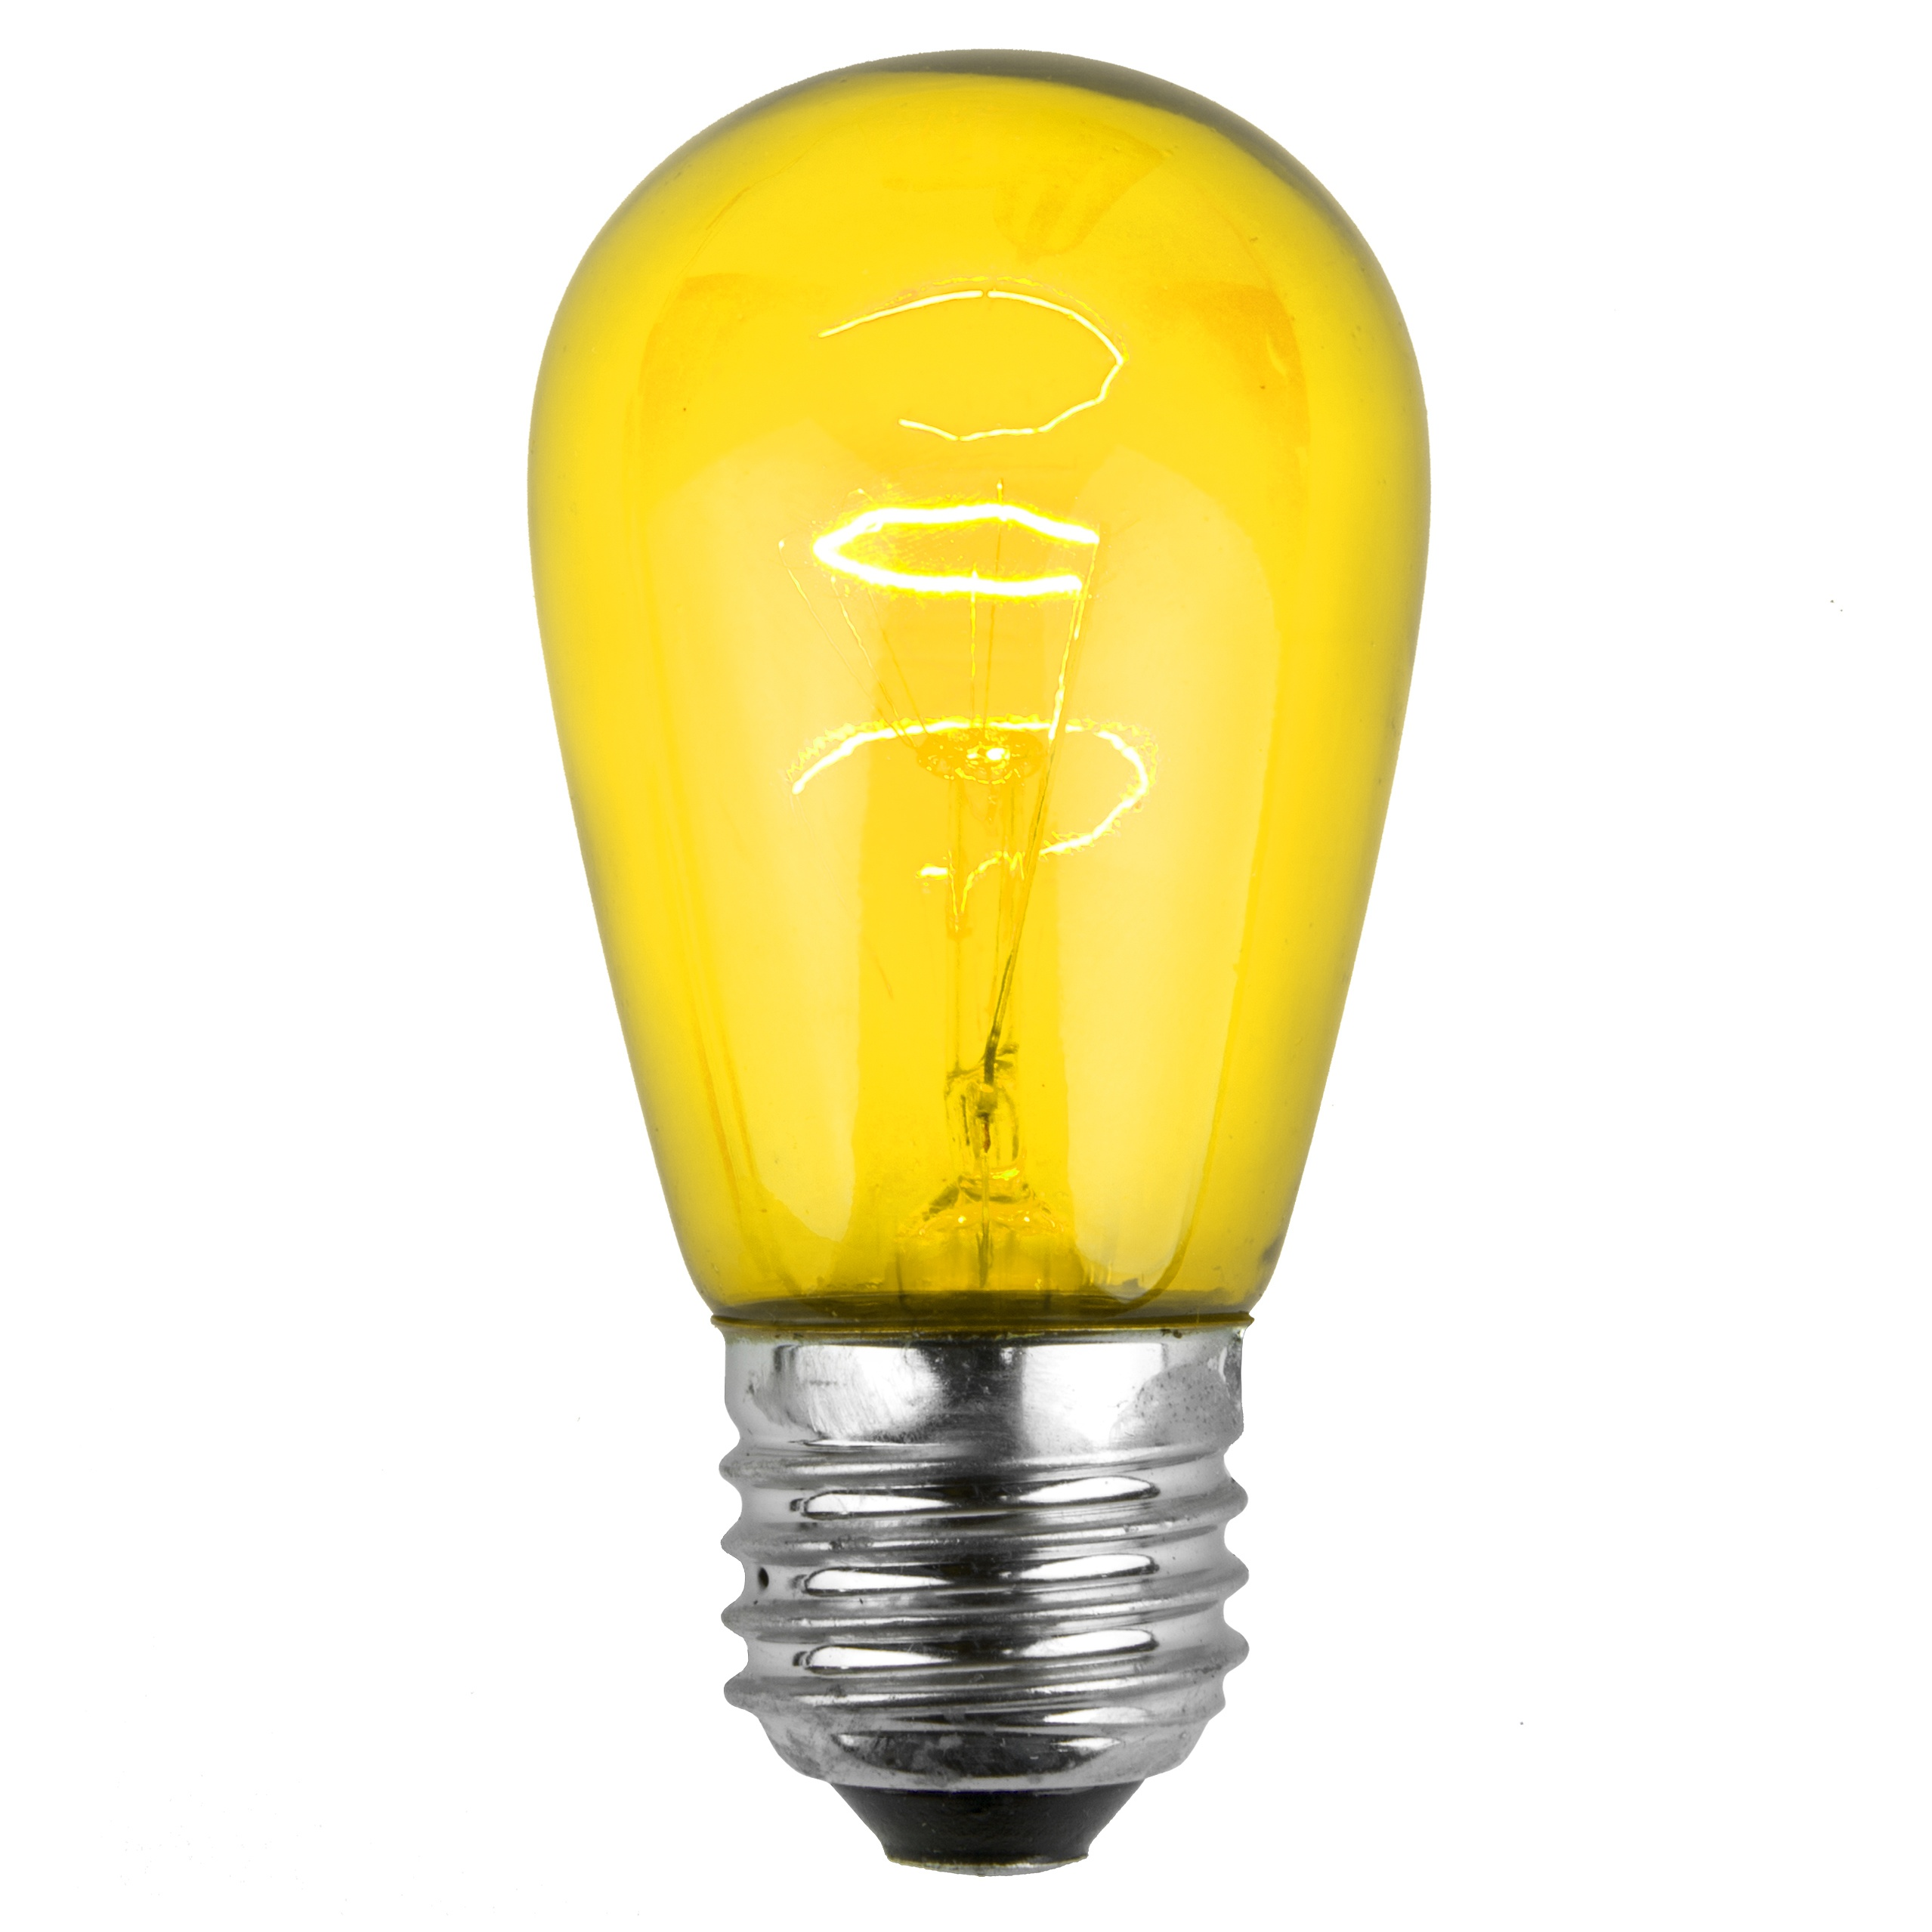 11S14 Transparent Yellow Incandescent Sign Lamp